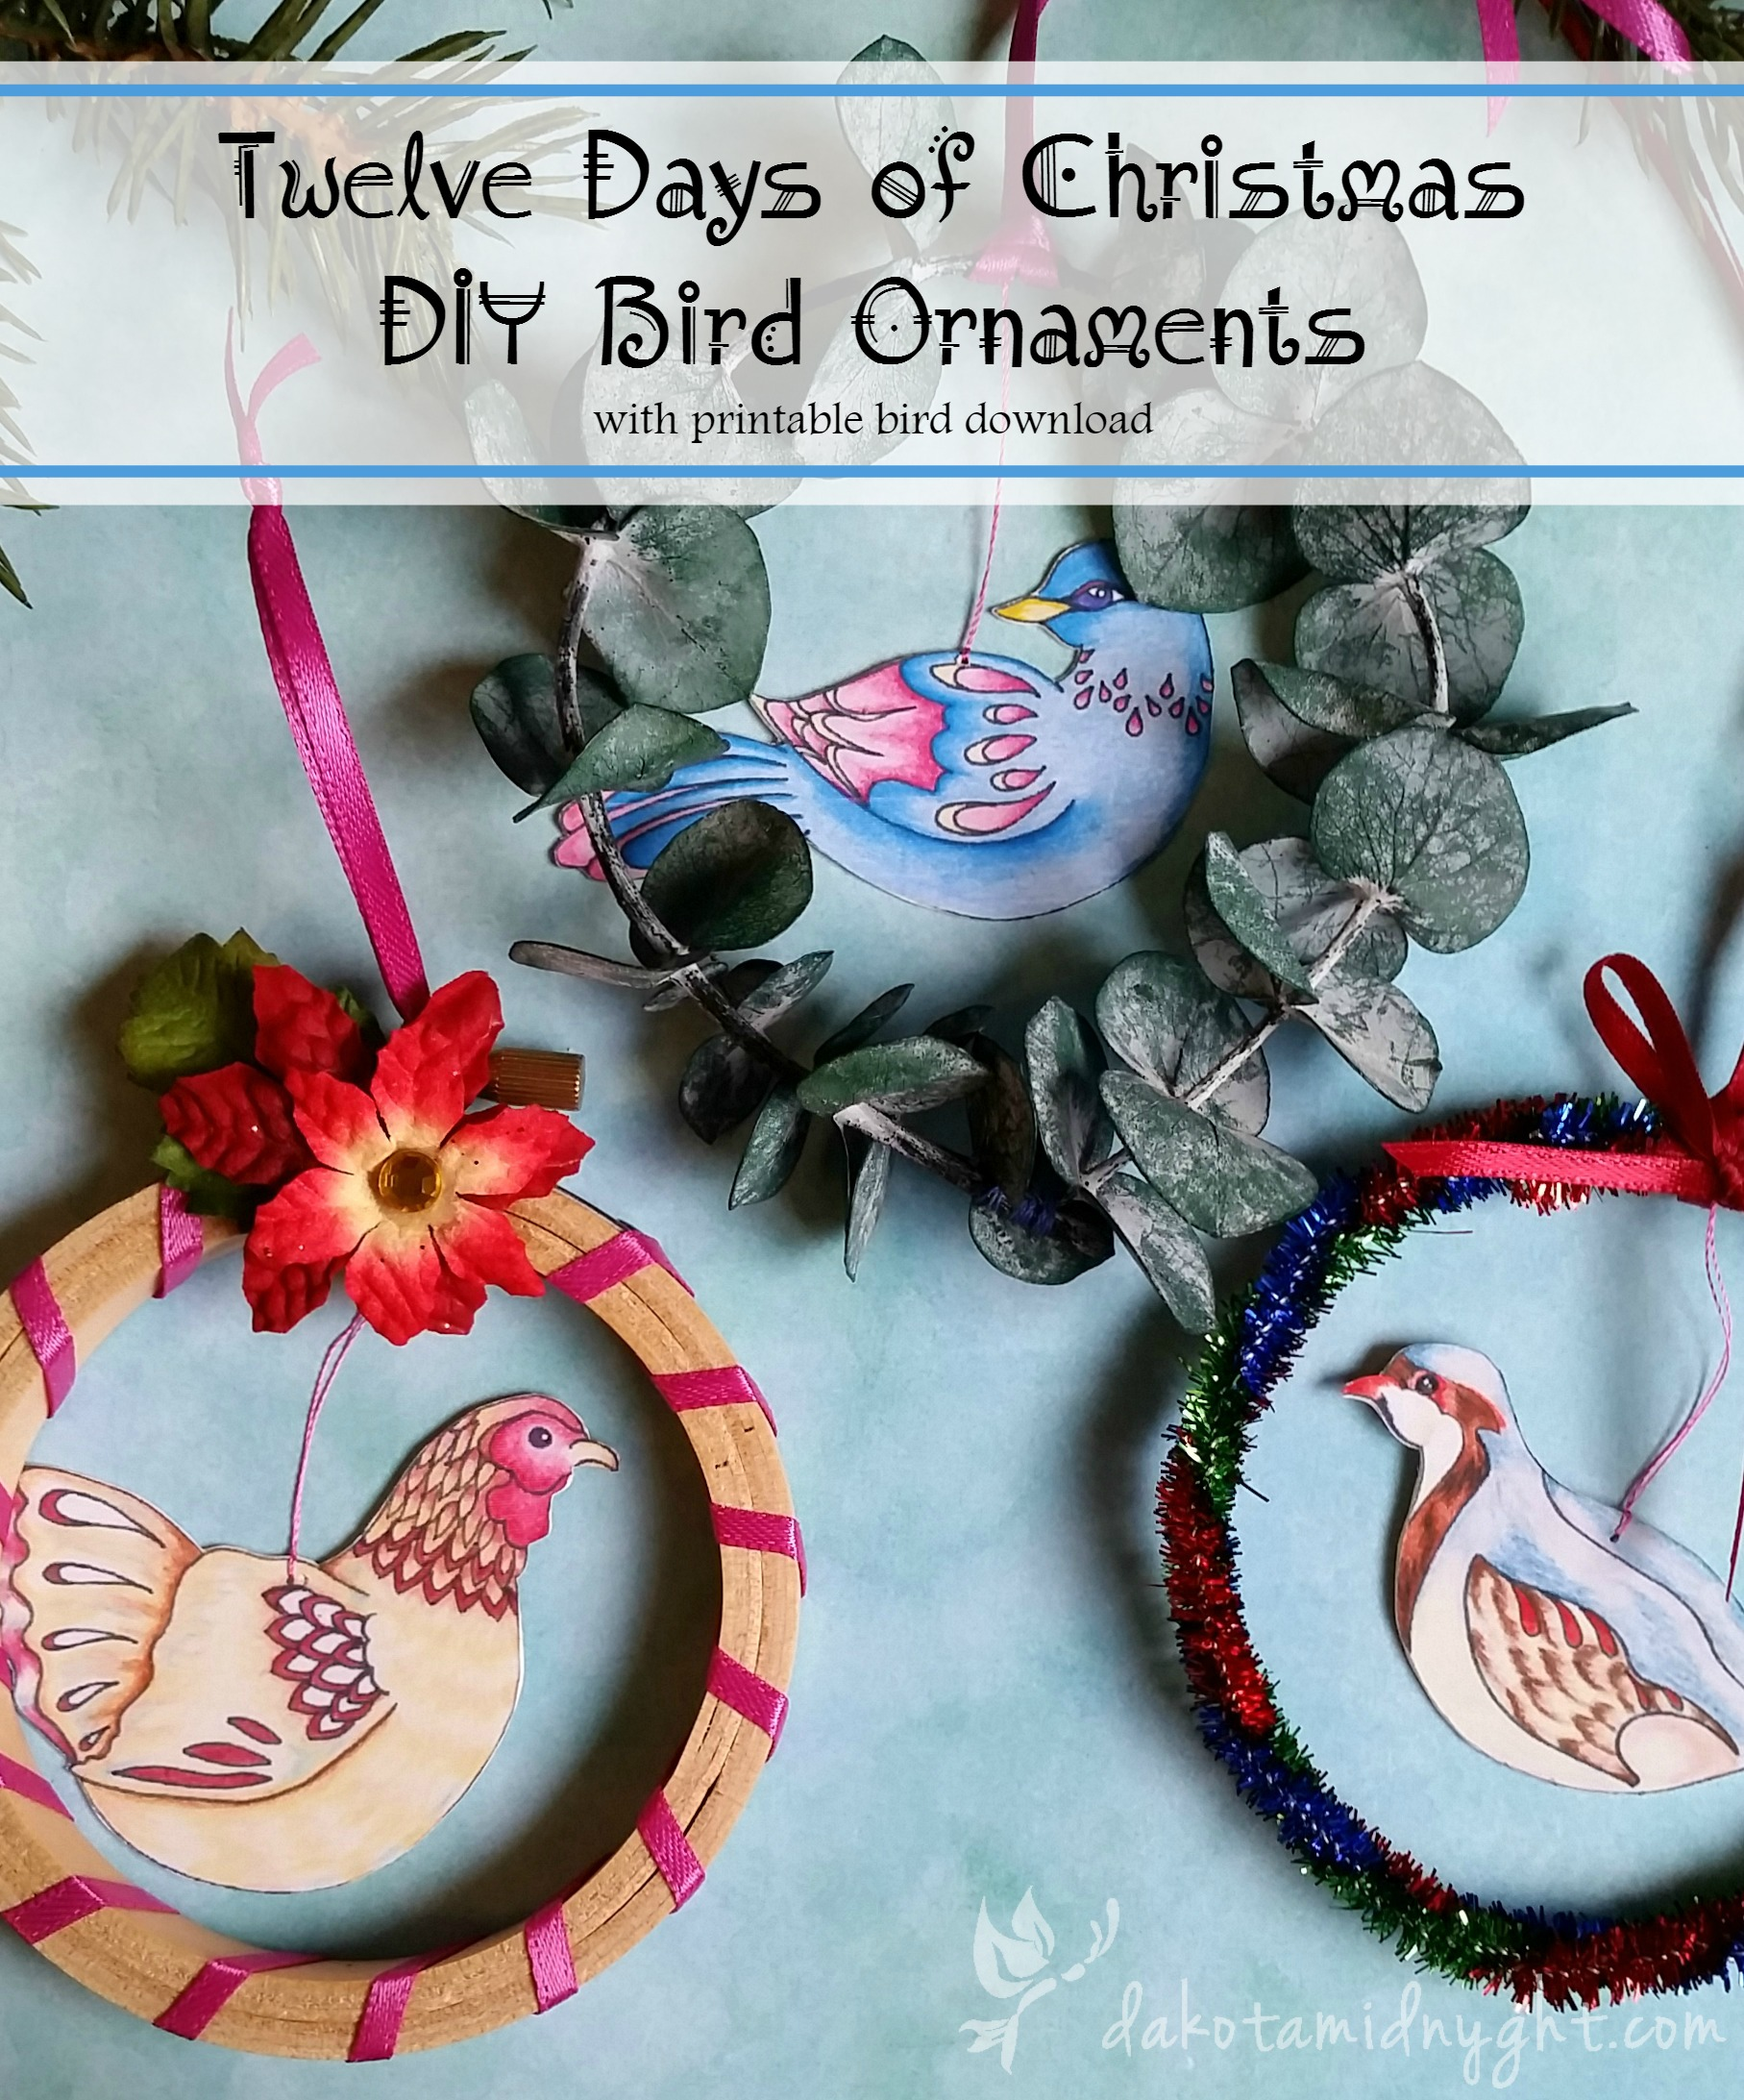 Free printable download for Twelve Days of Christmas DIY Bird Ornaments | dakotamidnyght.com